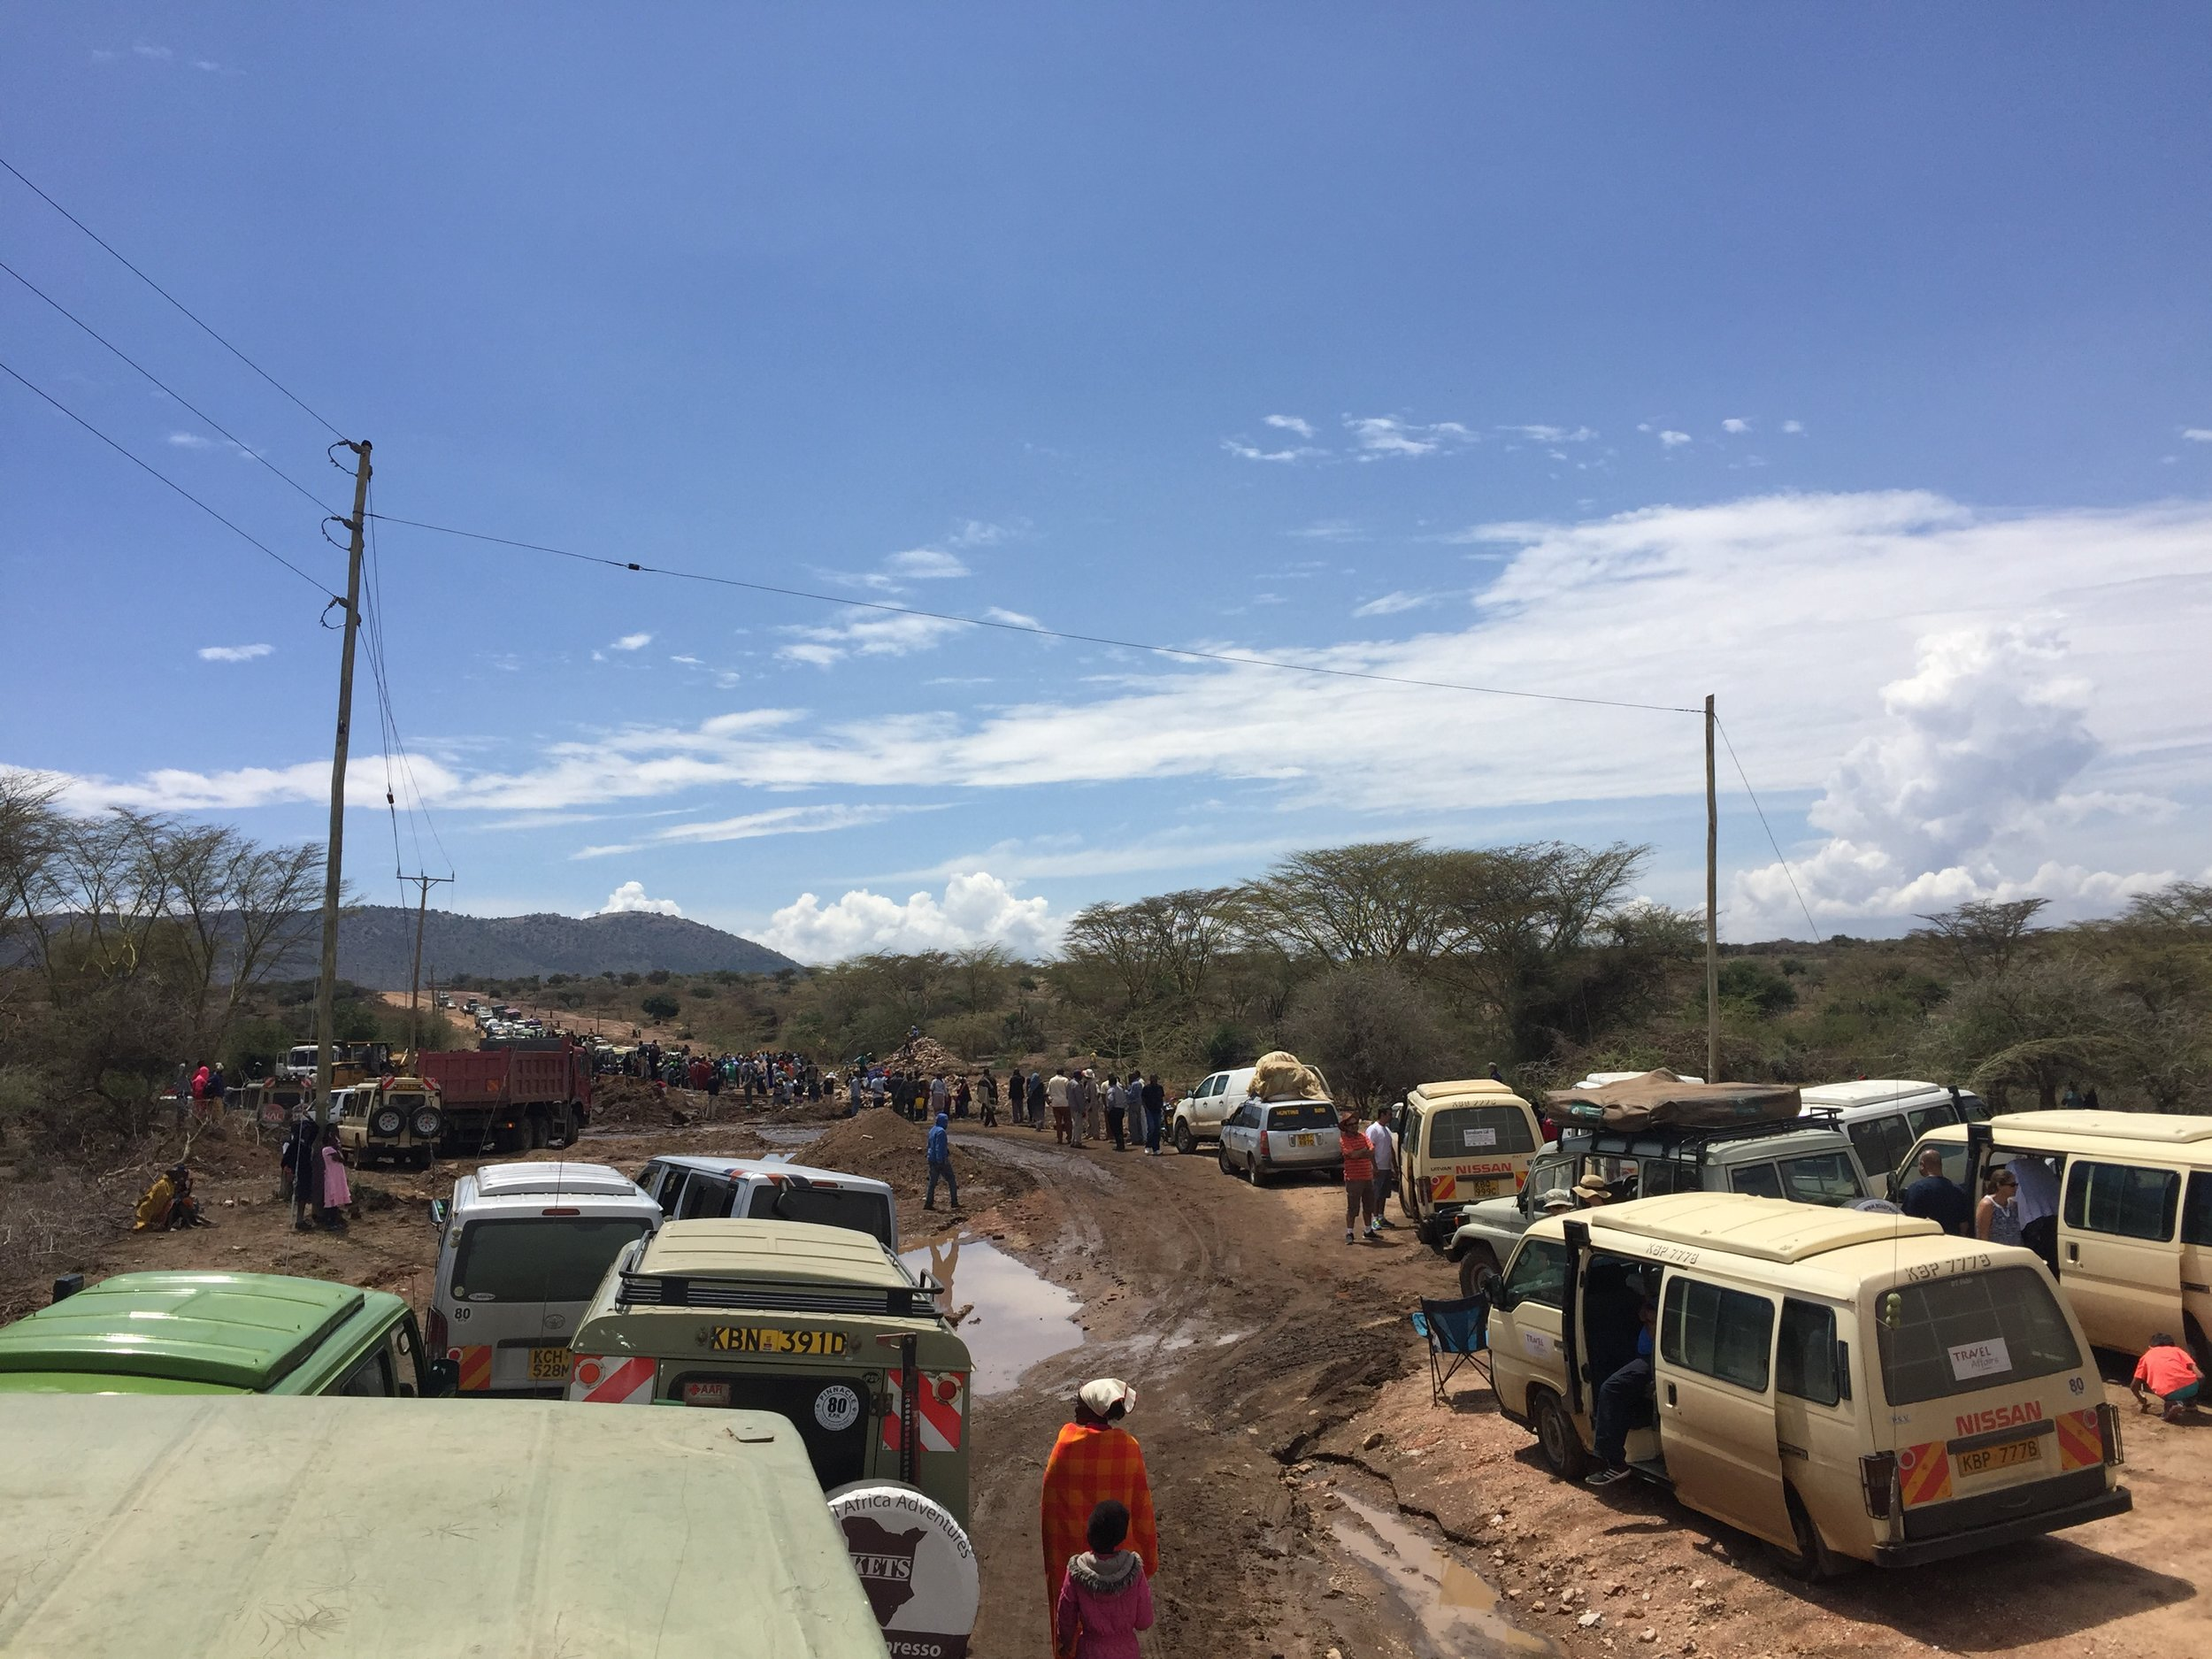 On our way into the Maasai Mara, the only road in washed out the night prior.